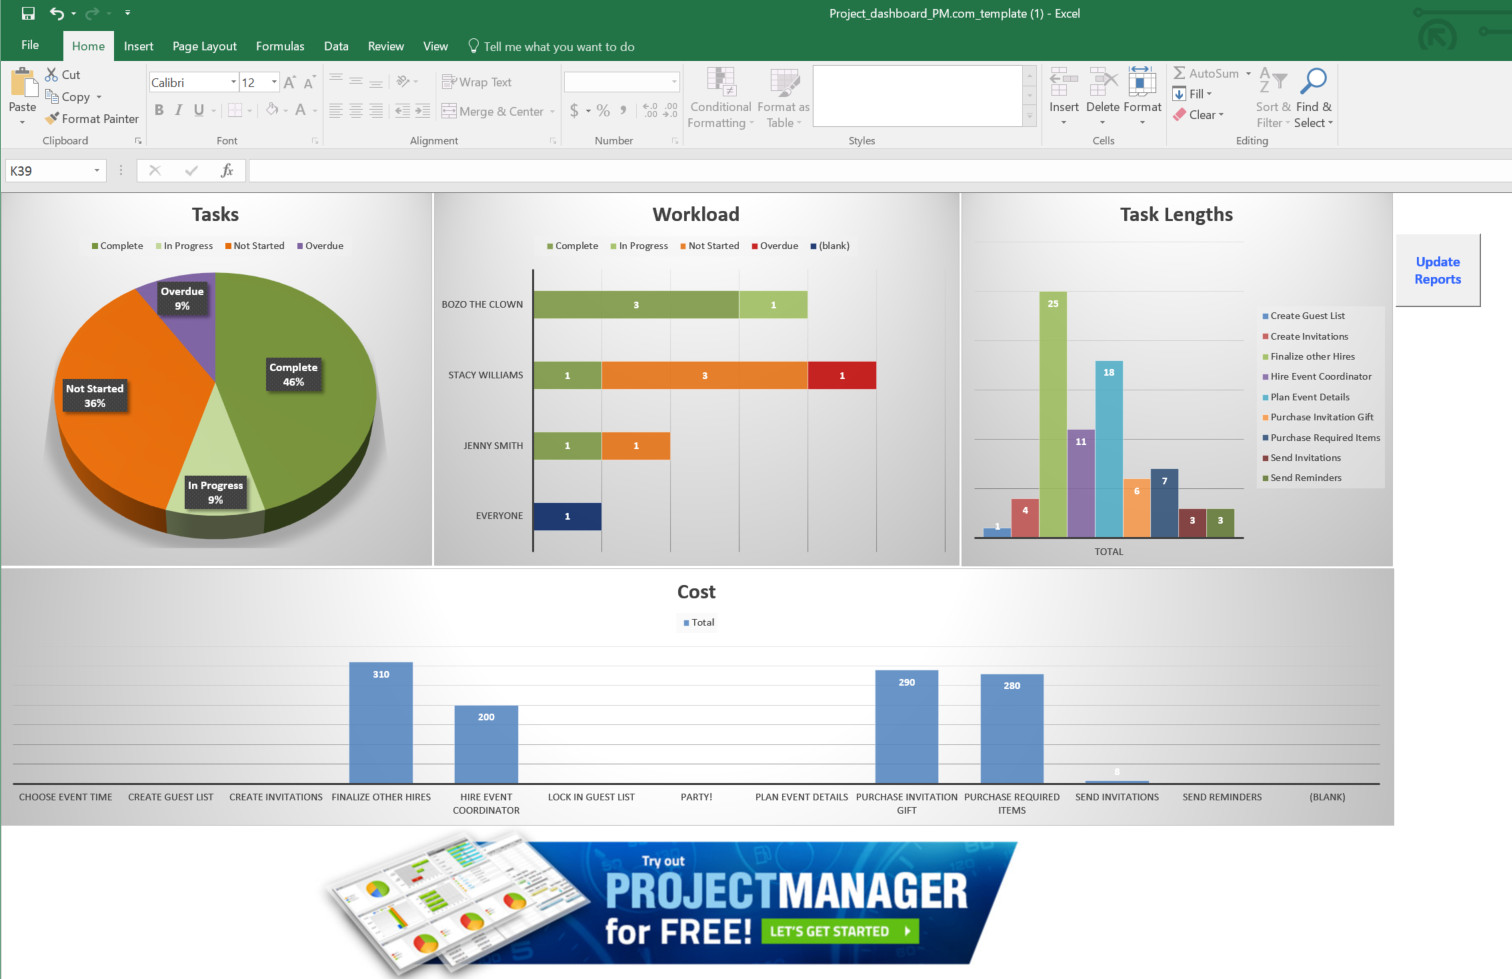 Template For Project Tracker Template Excel In Project Tracker Template Excel Format